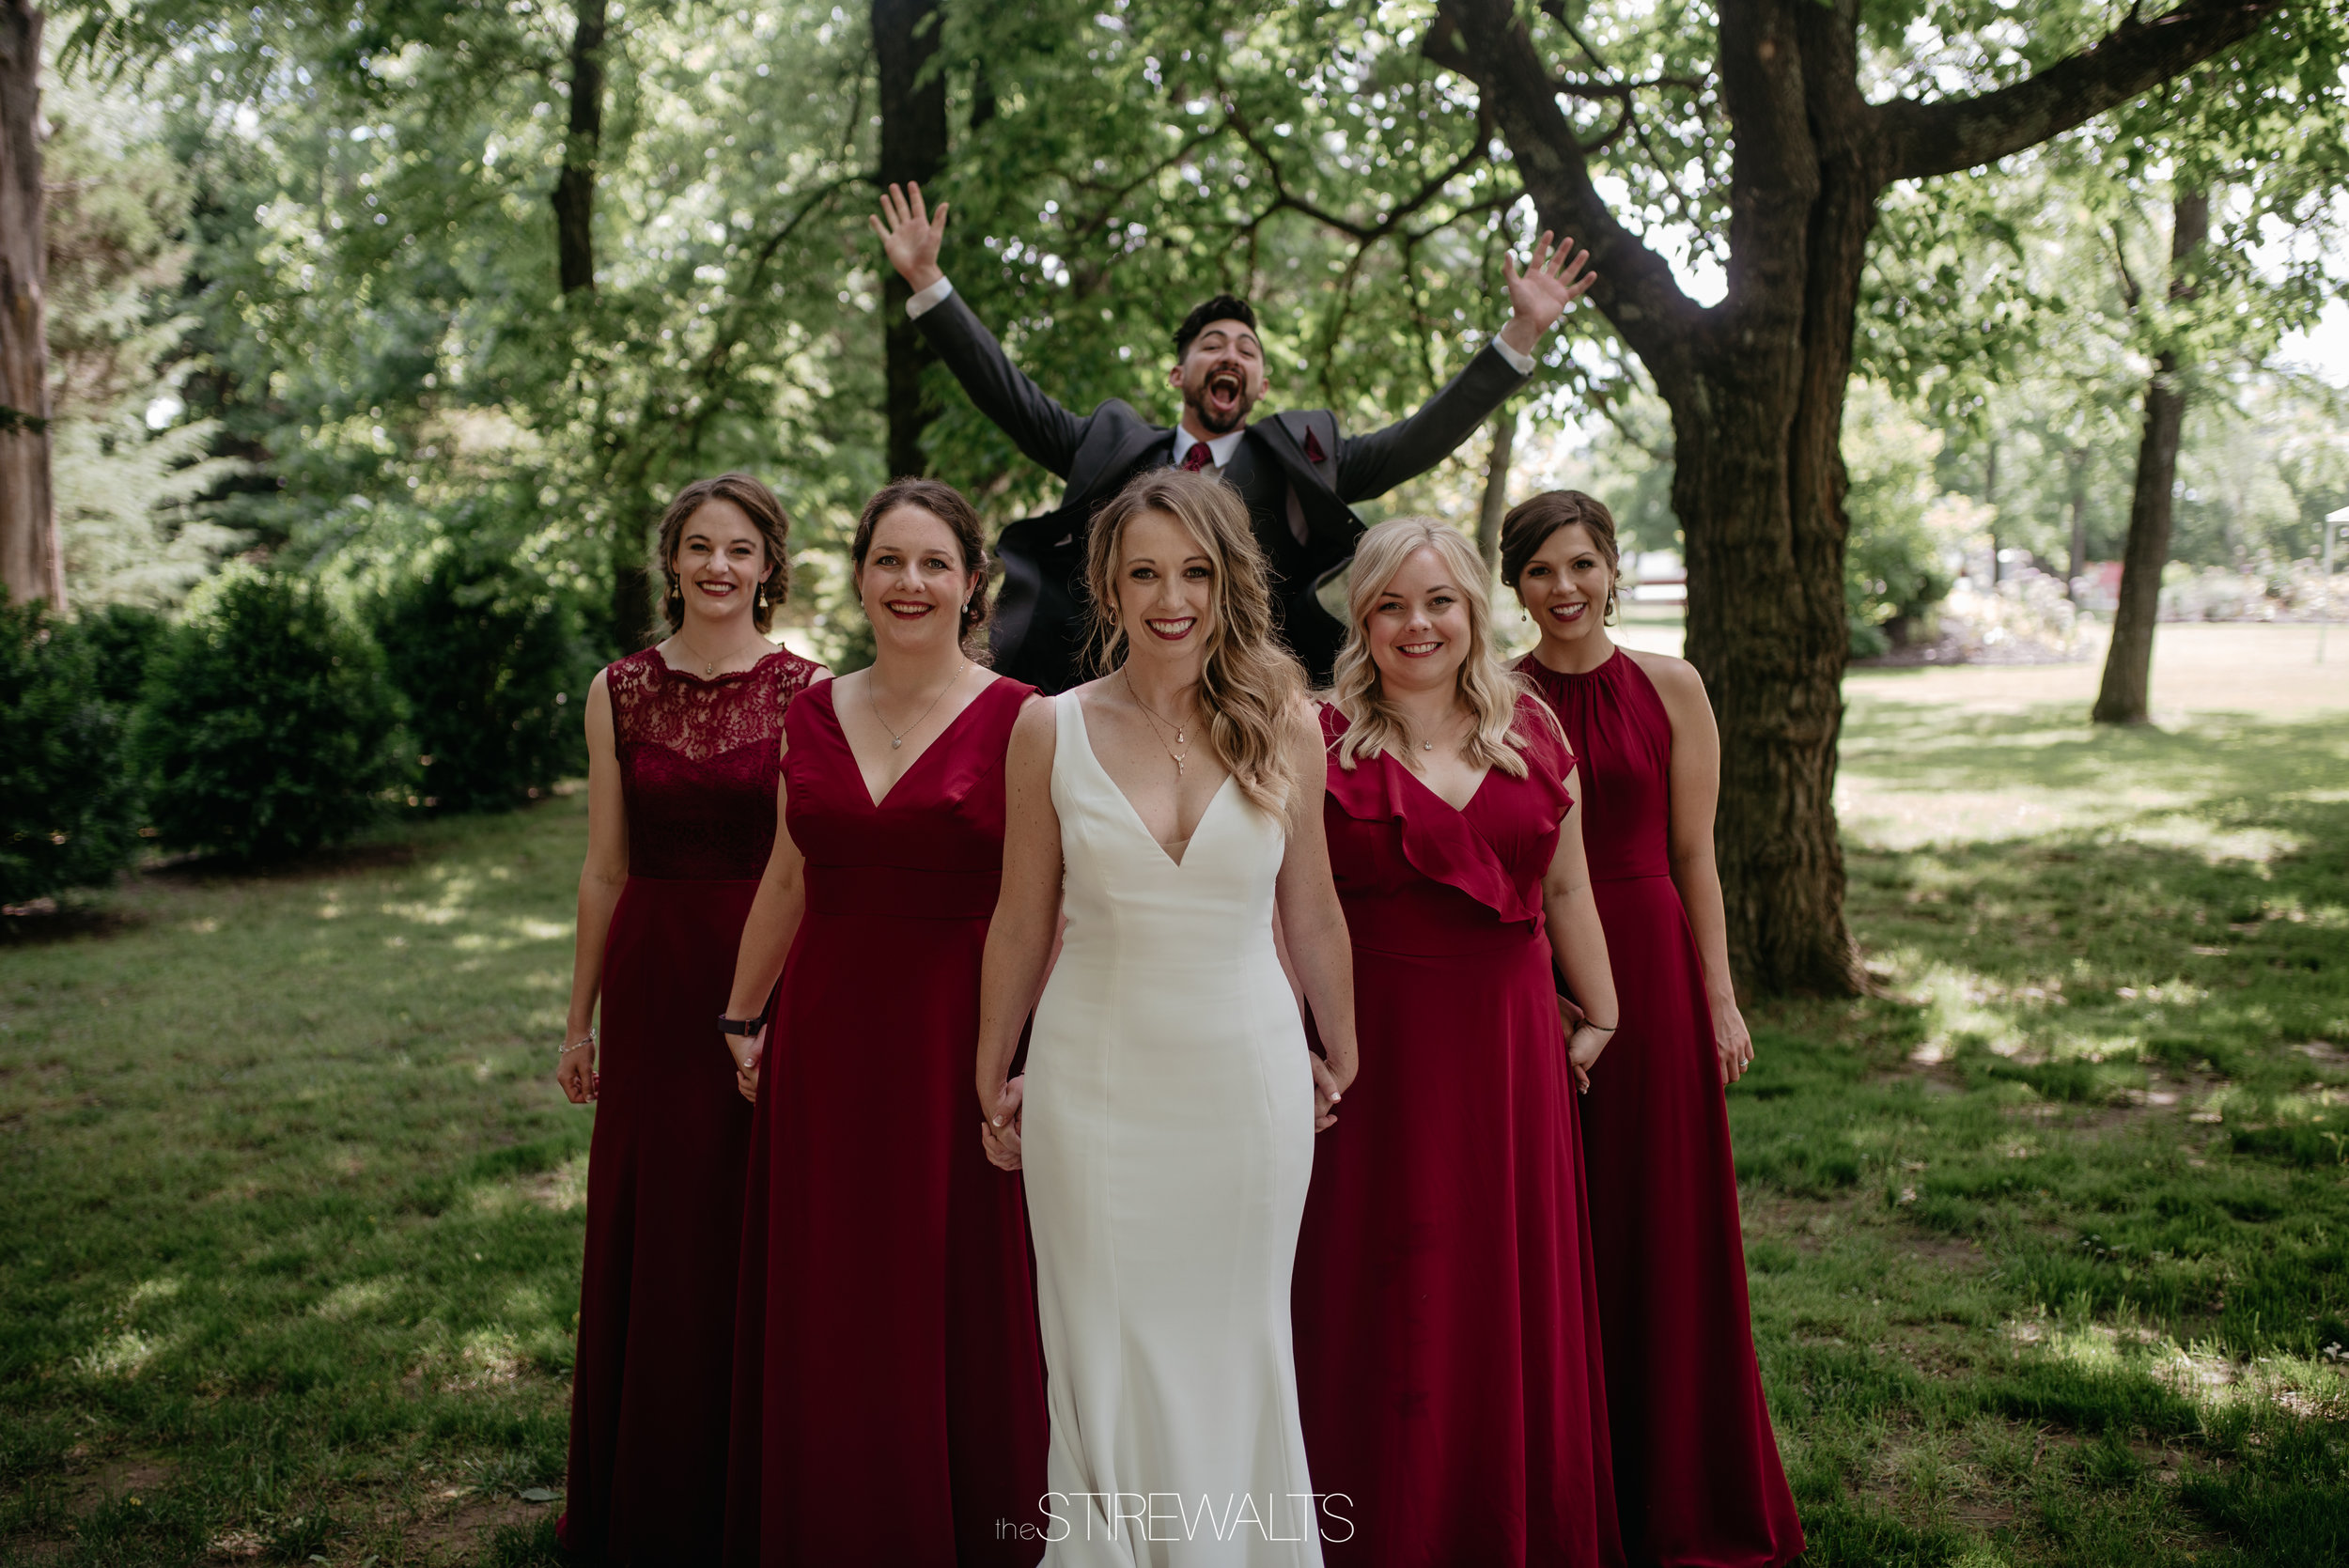 Kayla.Jay.Wedding.Blog.2018.©TheStirewalts-64.jpg